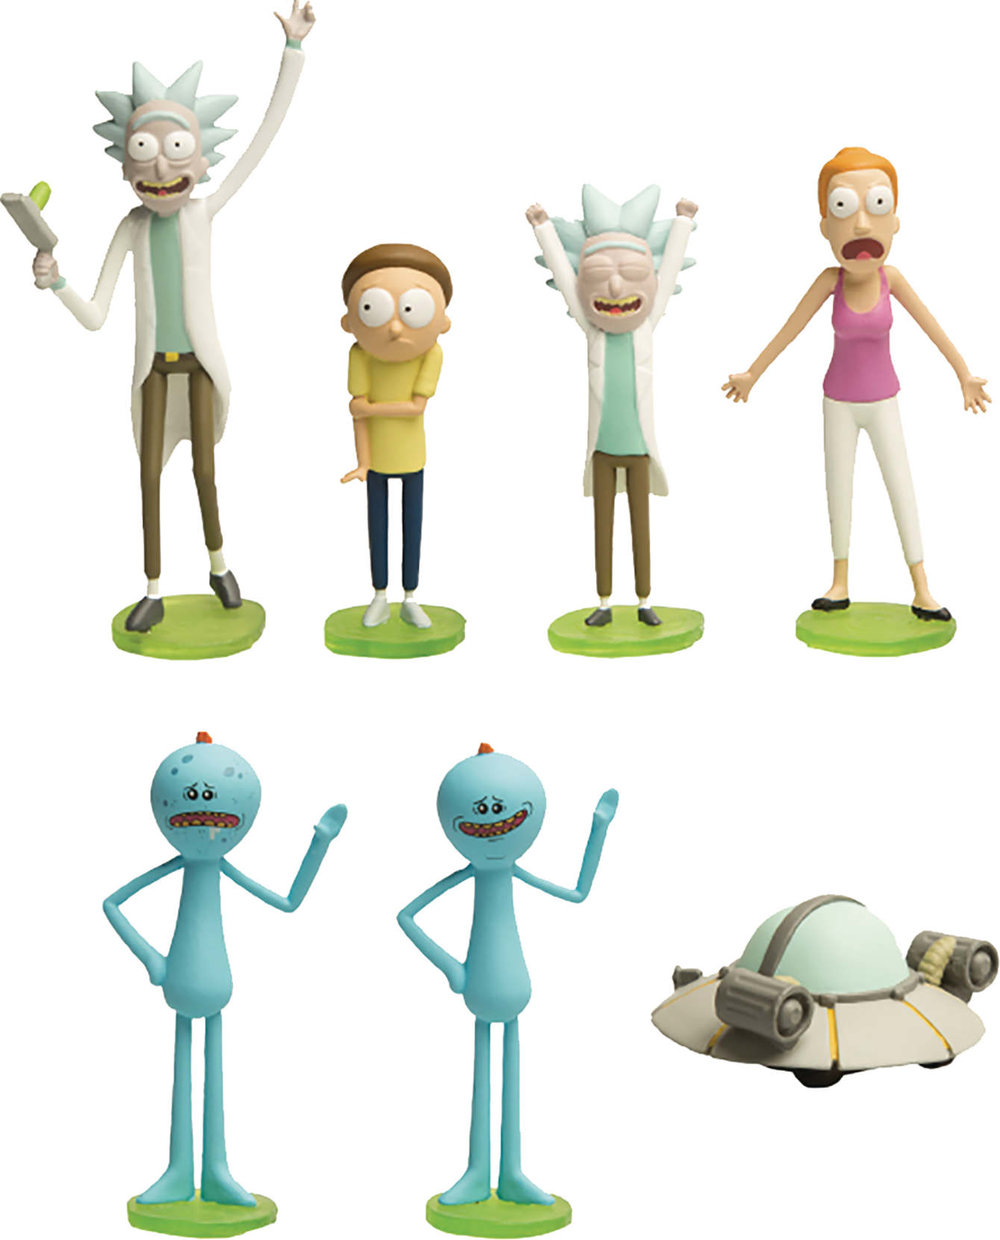 Rick-and-Morty-product-line.jpg